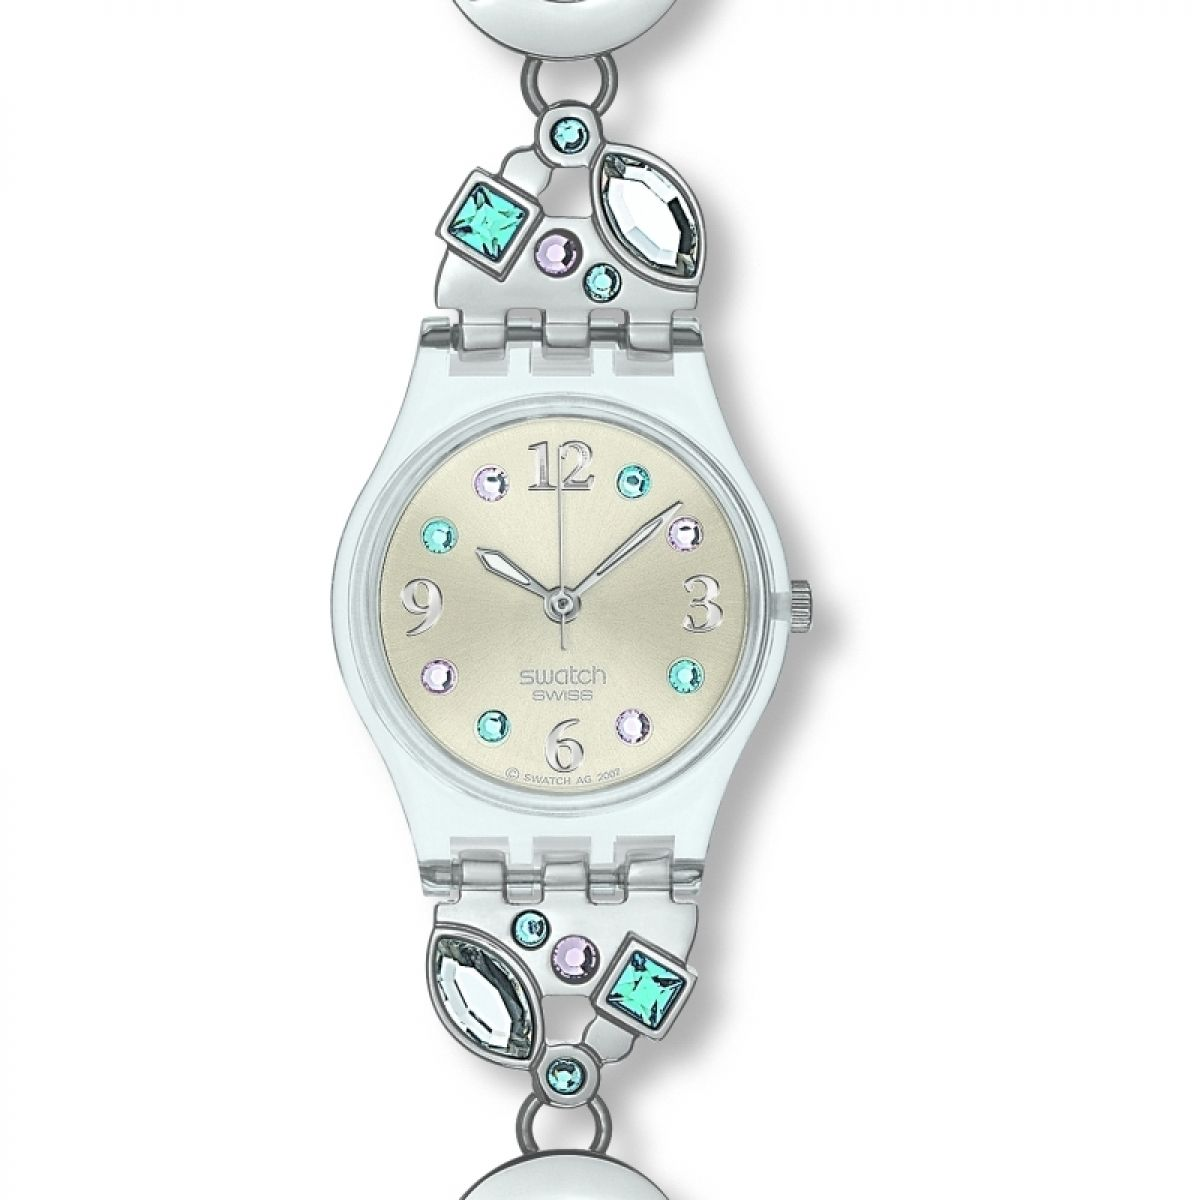 Genskie_chasy_Swatch (43)